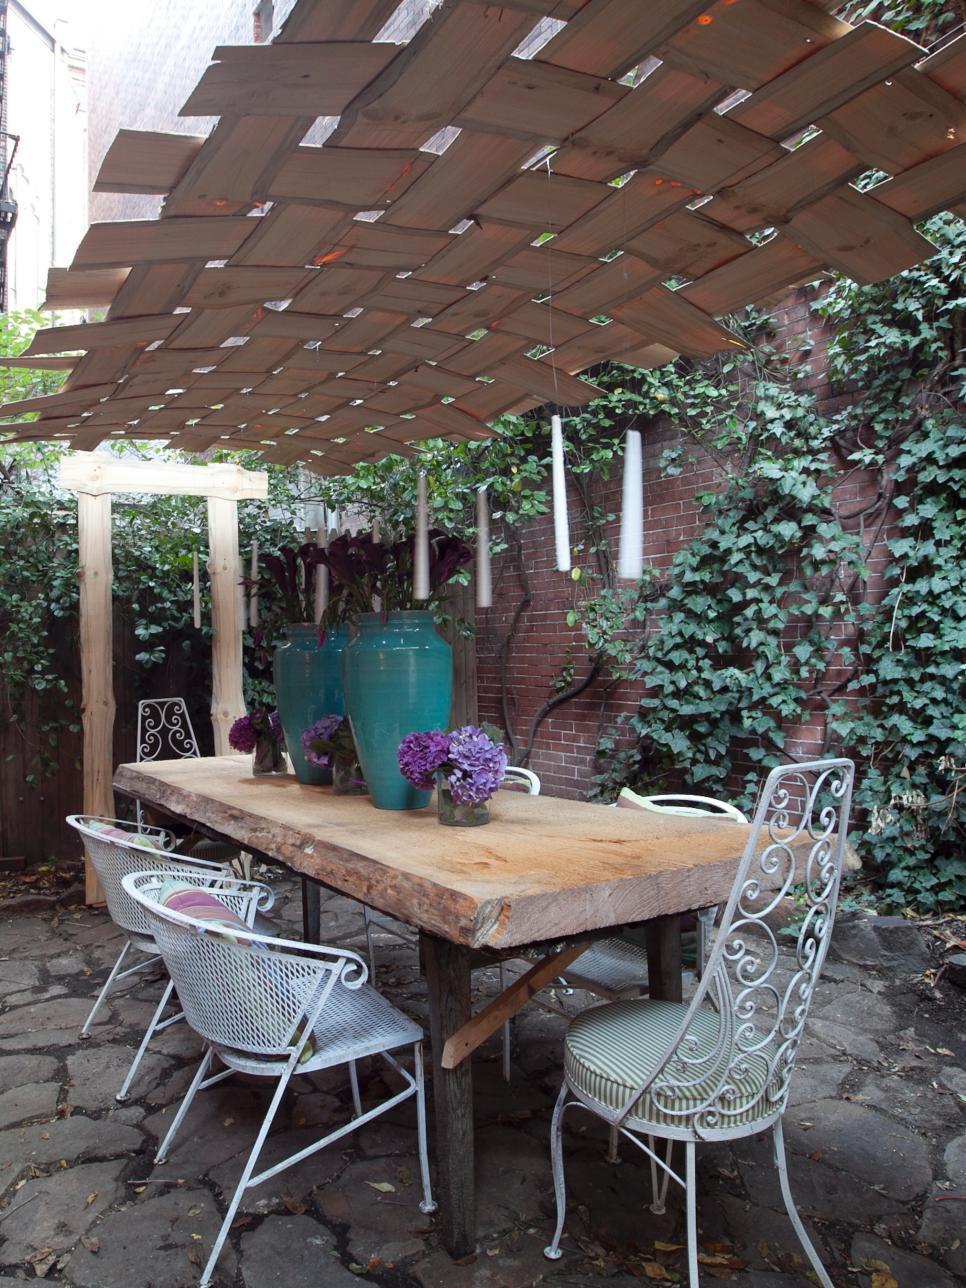 10 Creative DIY Outdoor Shady Space Ideas----Thin pieces of wood veneer were woven together like a basket to create a unique canopy suspended above an outdoor dining area.